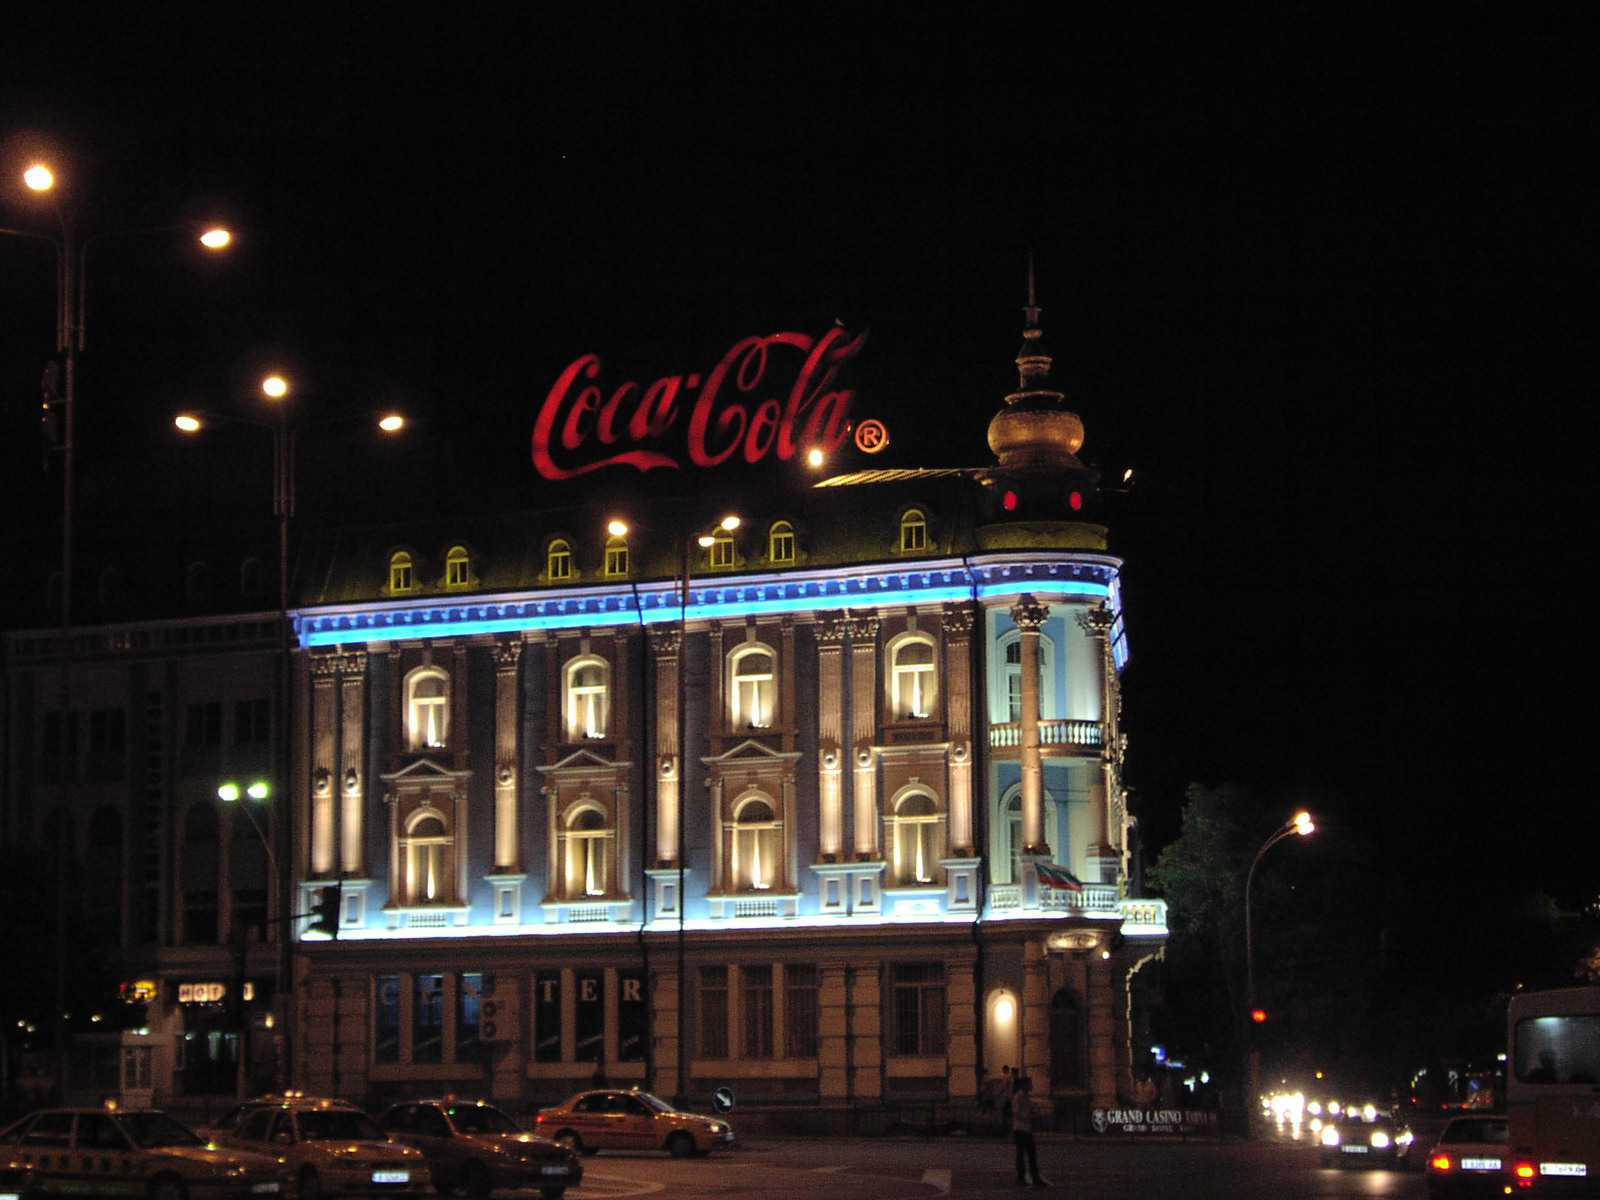 movie theatre coca cola.jpg